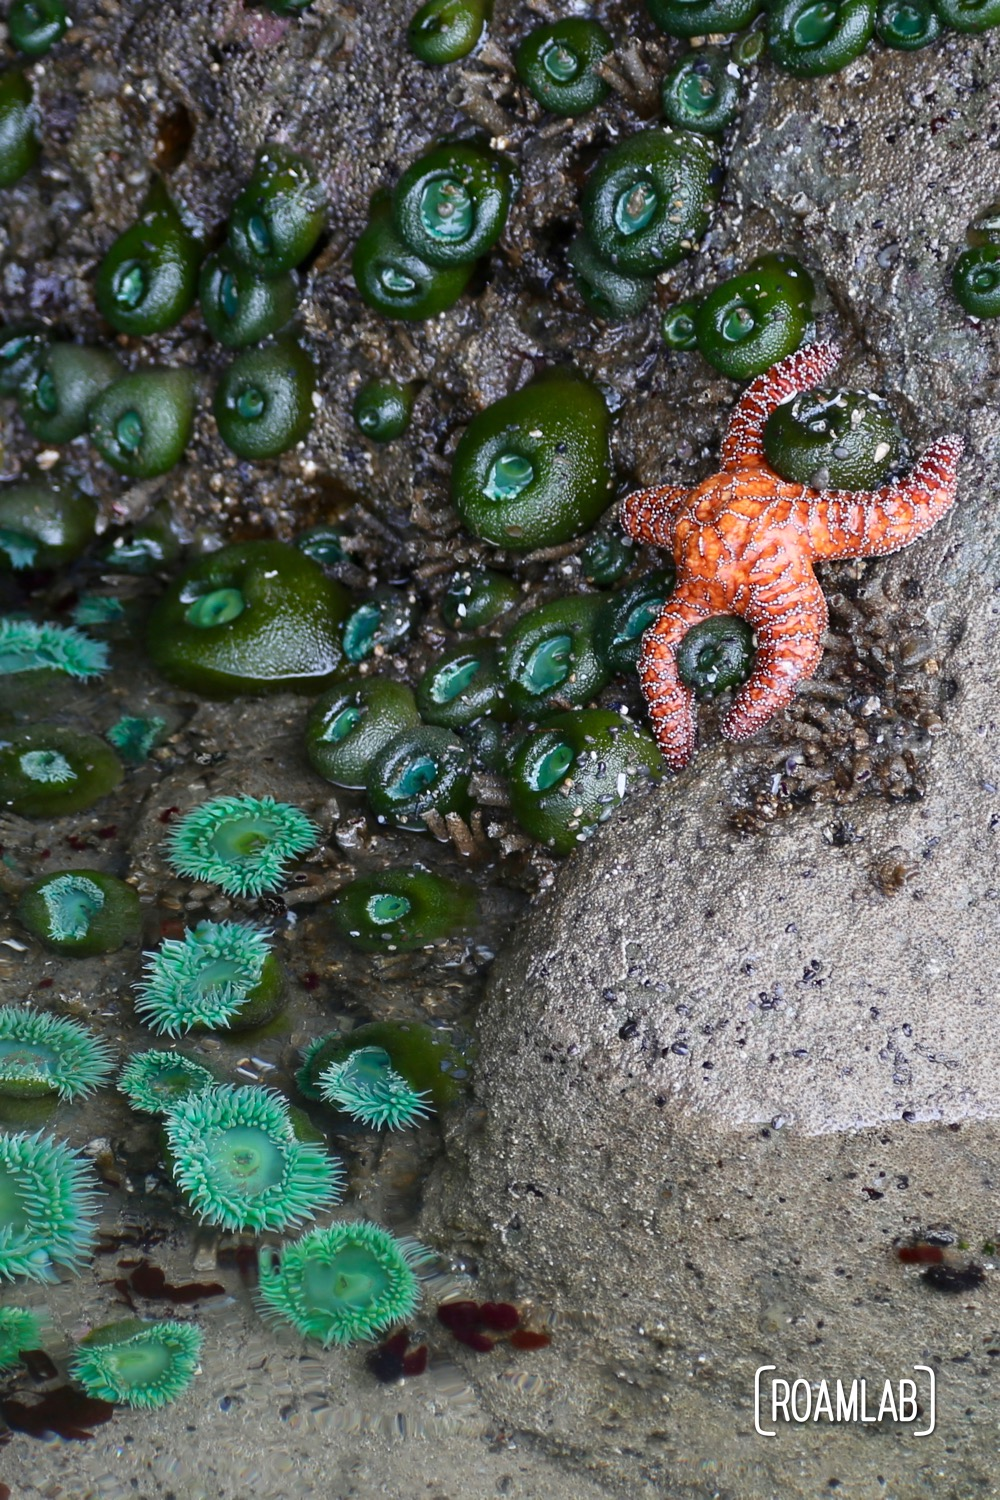 Starfish settled just above the tideline, delineated by open sea anemones below the water and closed anemones above.